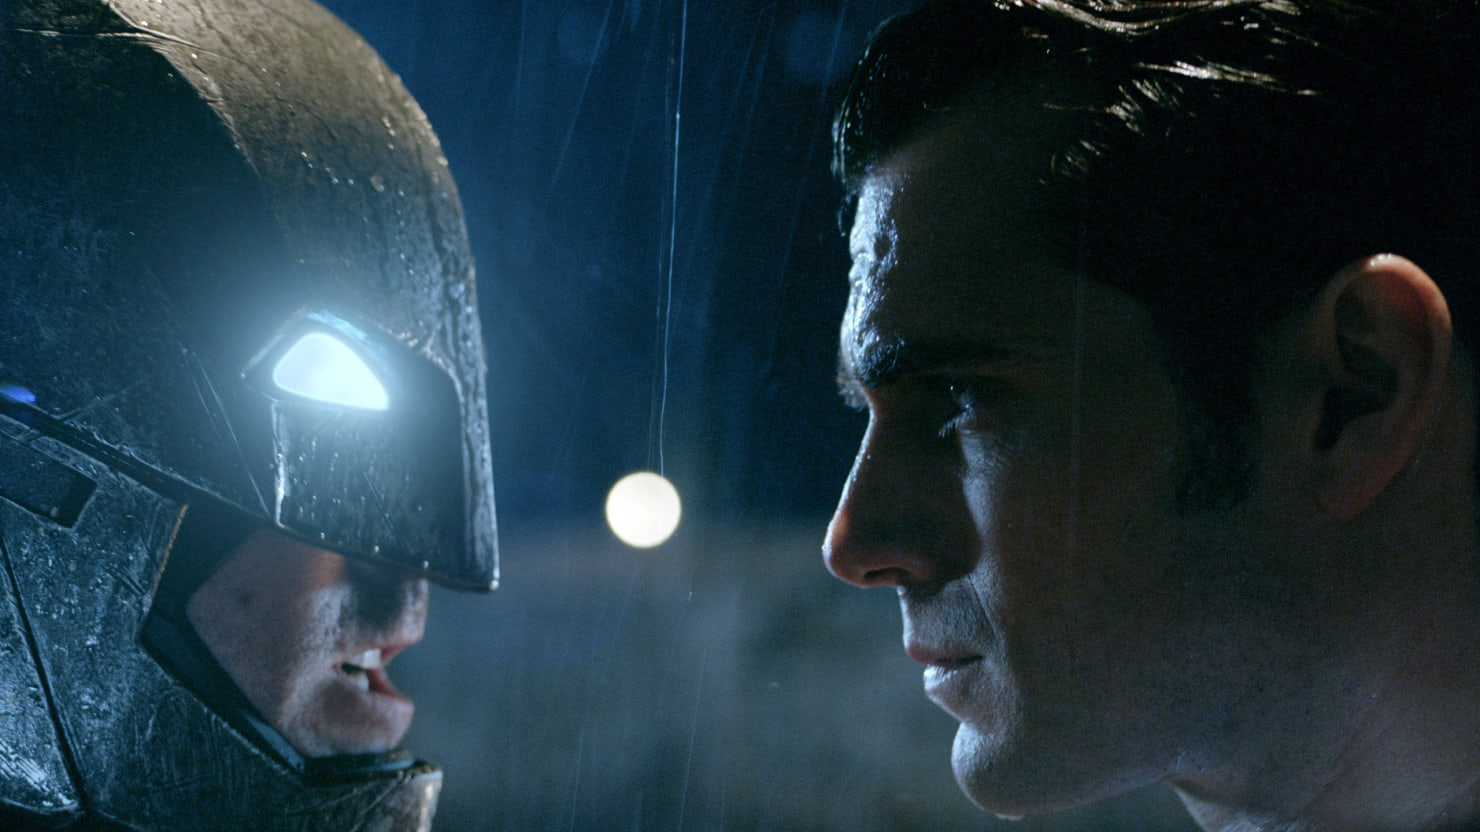 Zack Snyder: Sorry Marvel, 'Batman v. Superman' Transcends Superhero Movies